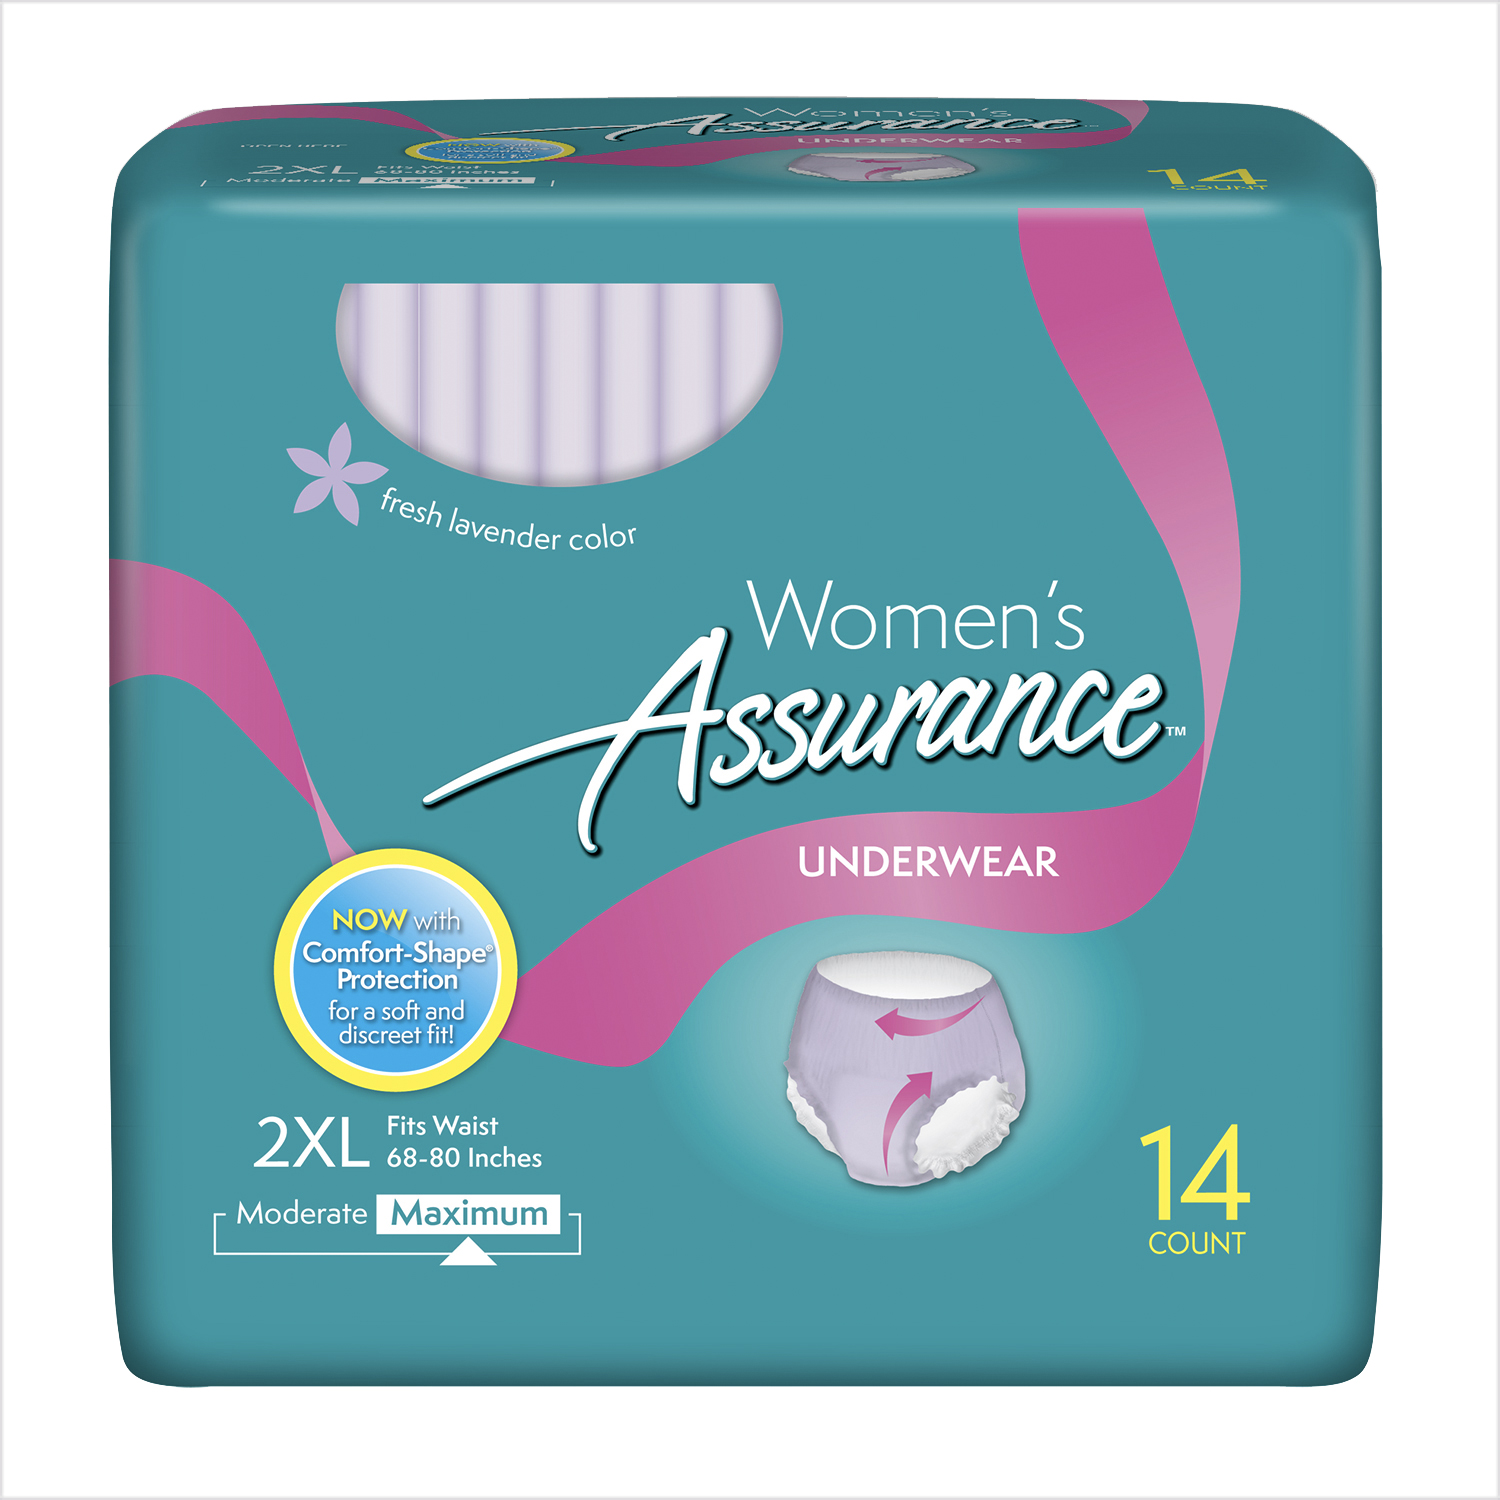 Assurance Incontinence Underwear for Women, Maximum, 2XL, 14 Ct